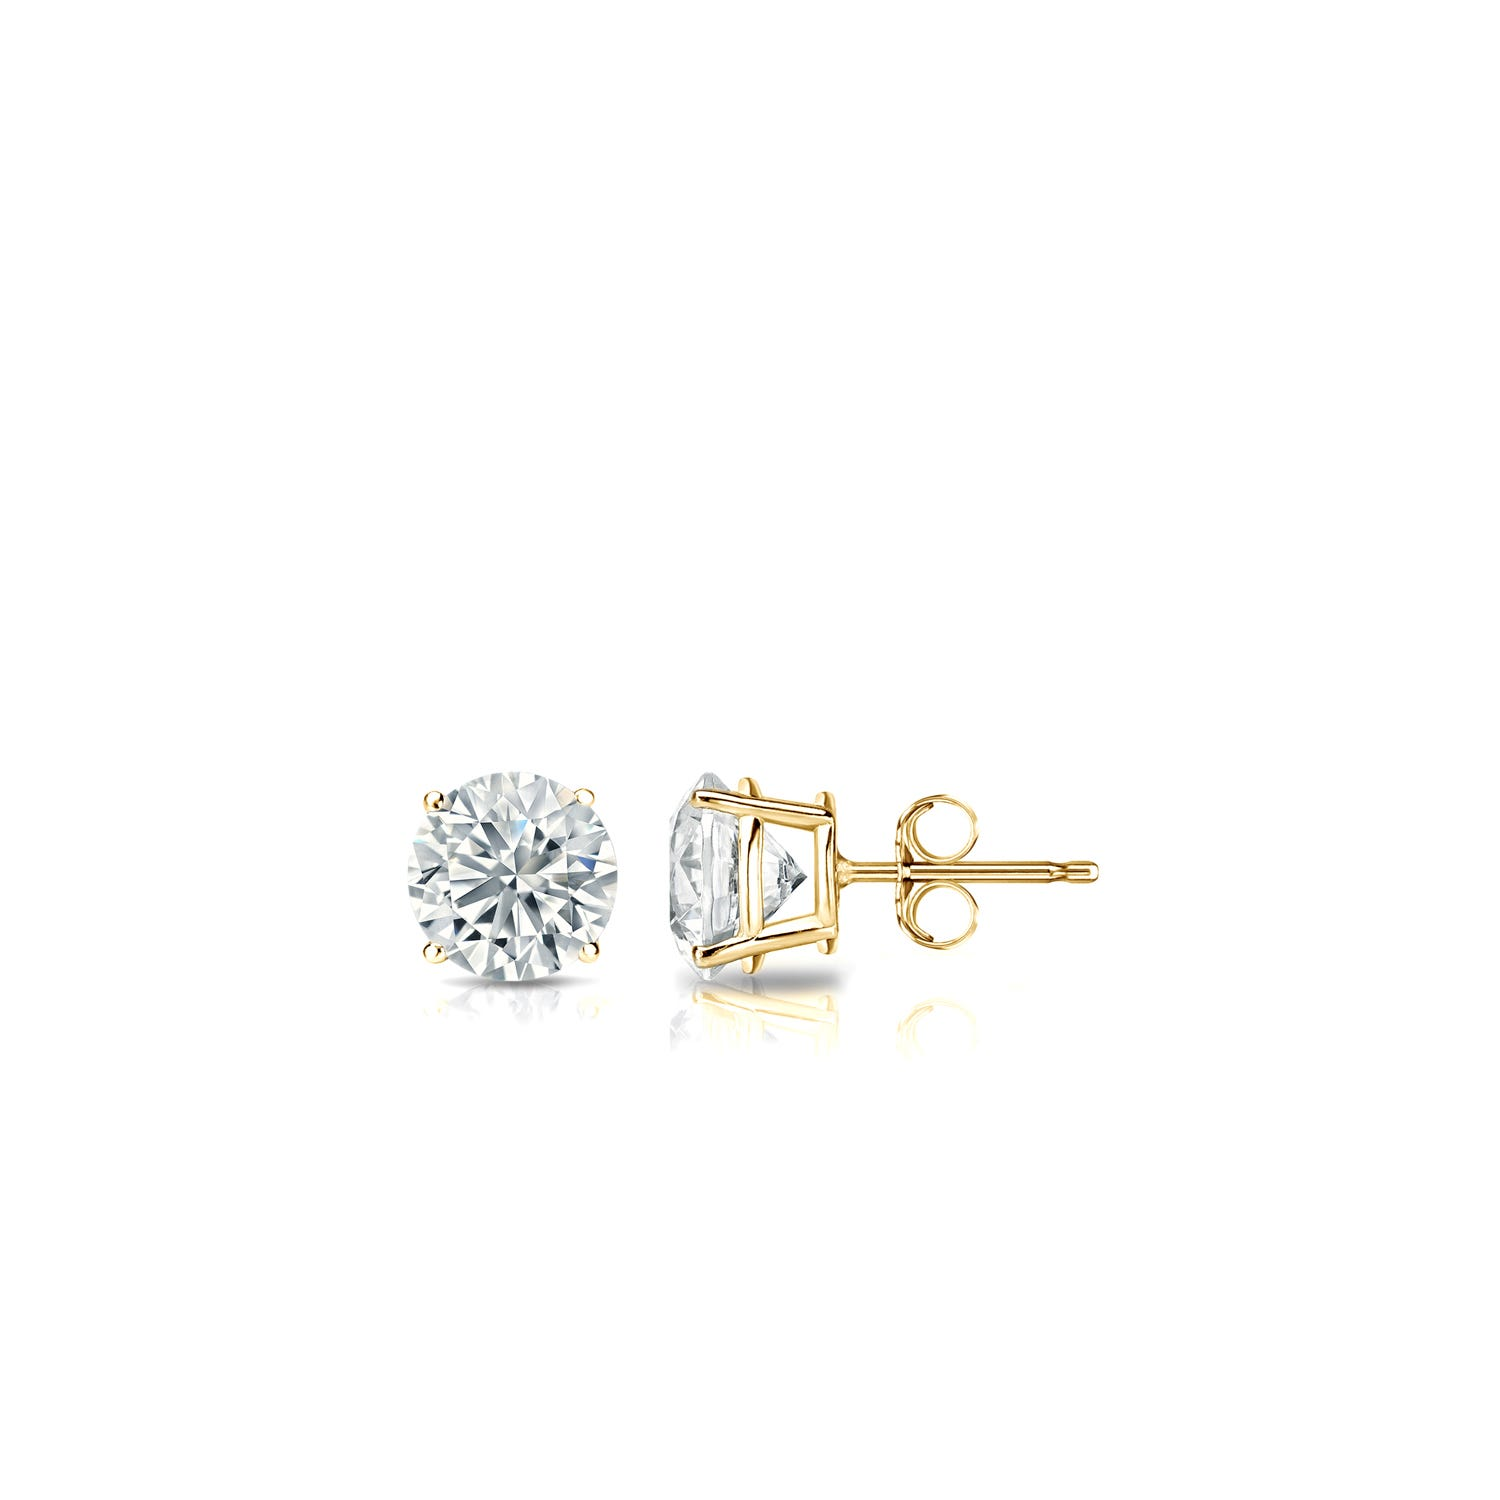 Diamond 1/5ctw. Round Solitaire Stud Earrings (I-J, I1) 18k Yellow Gold